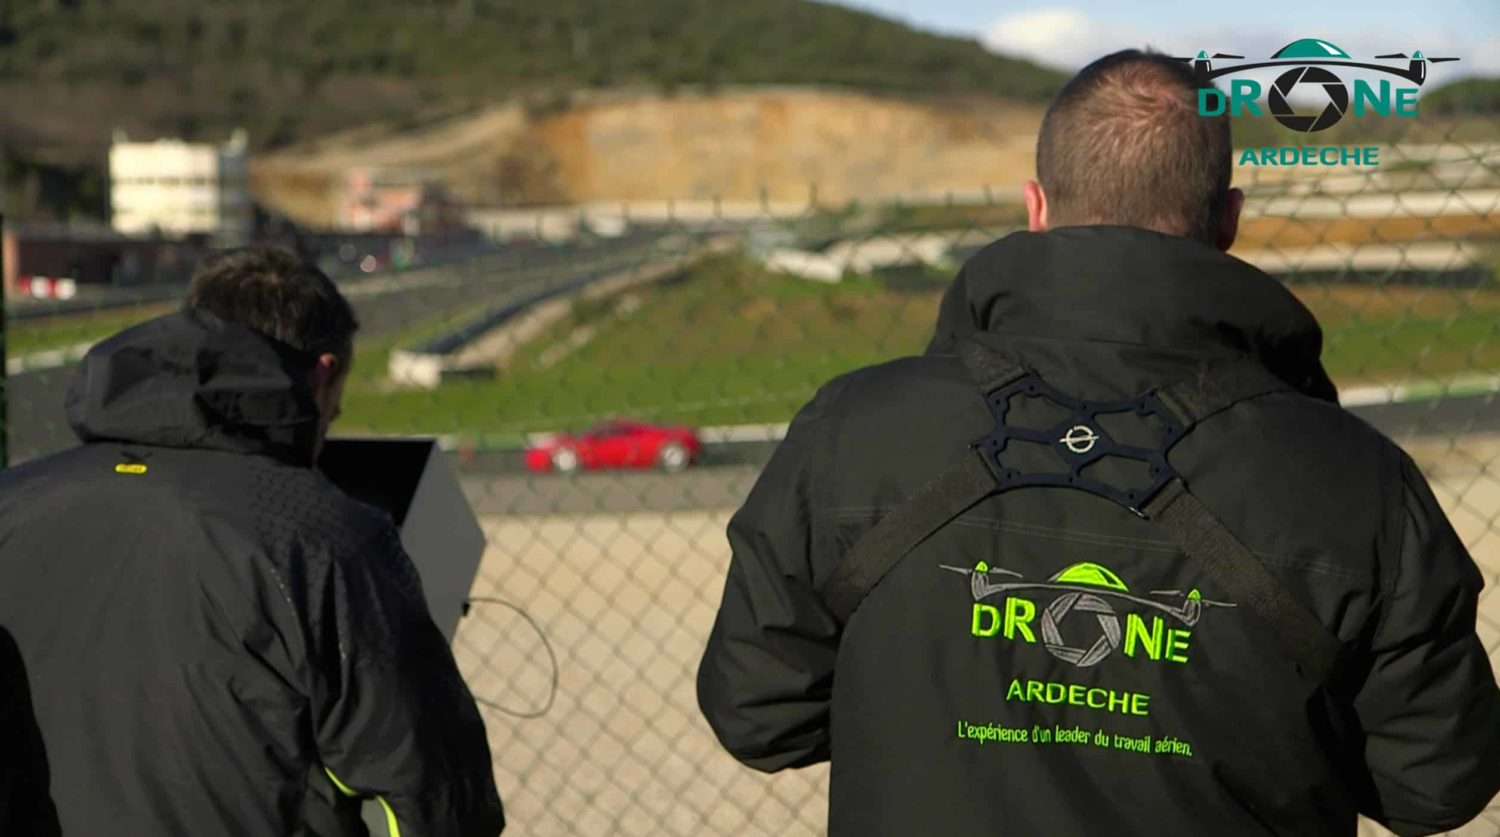 Polemecanique Dales Drone Pour Video Drone Pour Photo Circuit Automobile